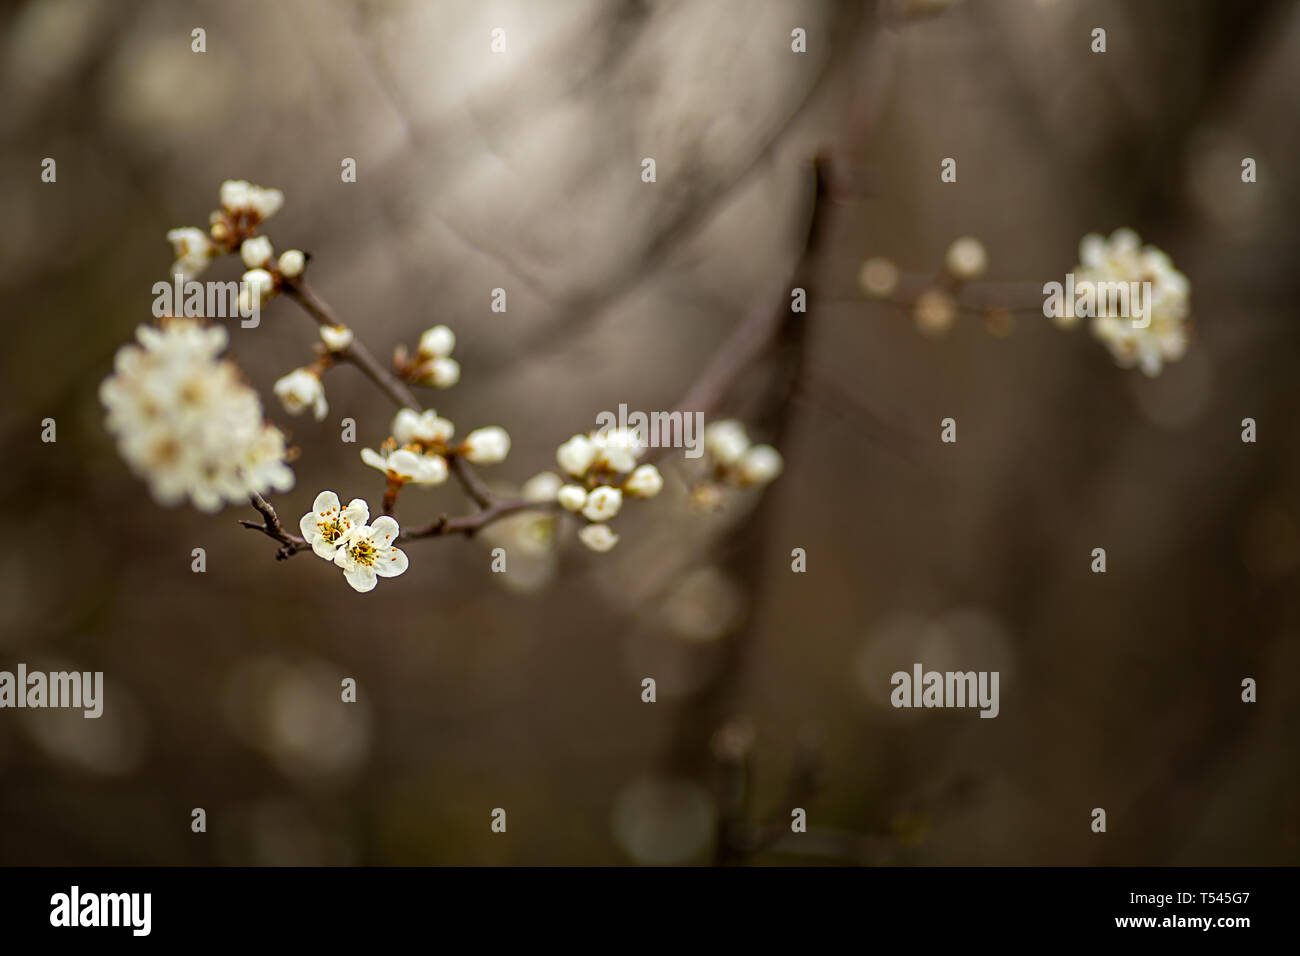 Shooting in Haiku Wabi Sabi style gentle imperfect modest fruit tree blossoms - Stock Image